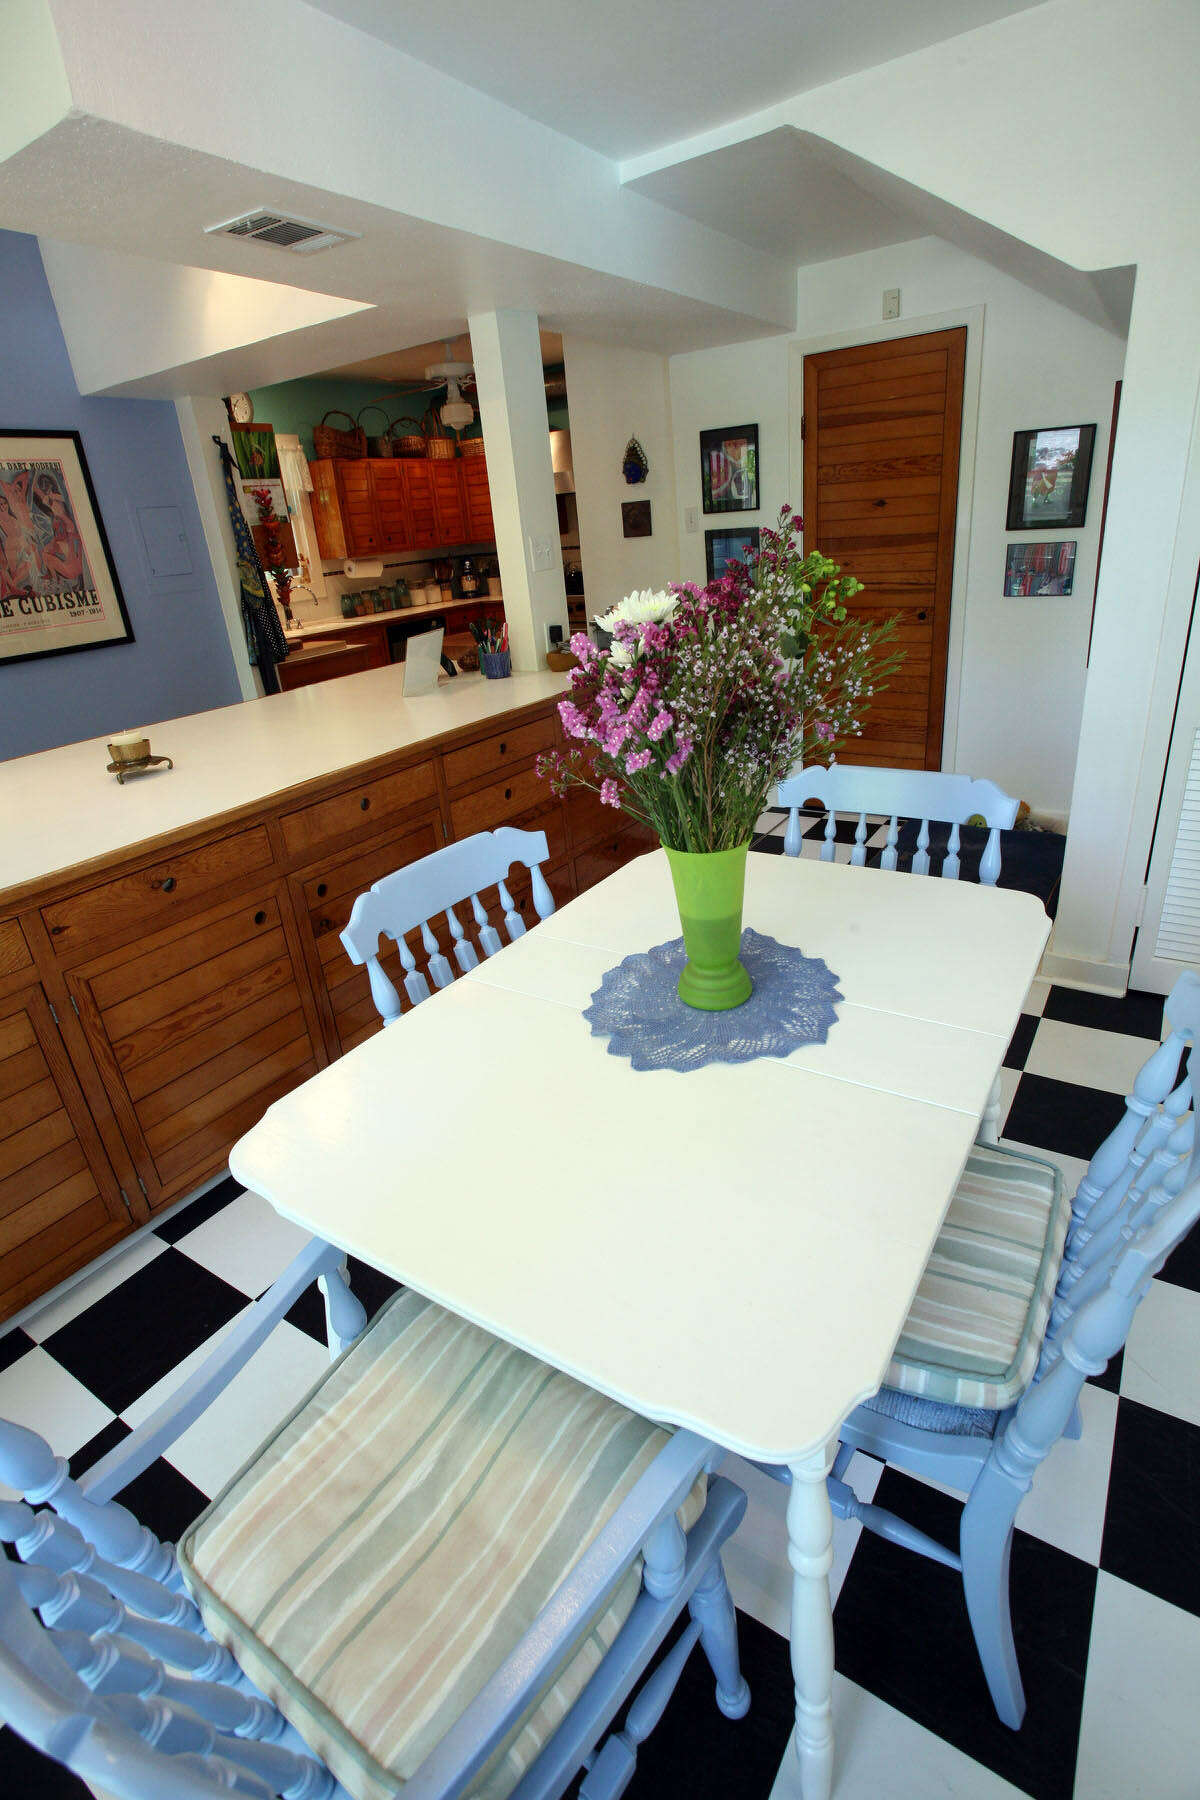 Paint updated maple dining chairs from Jan Peranteau's mother and a table from her sister-in-law.